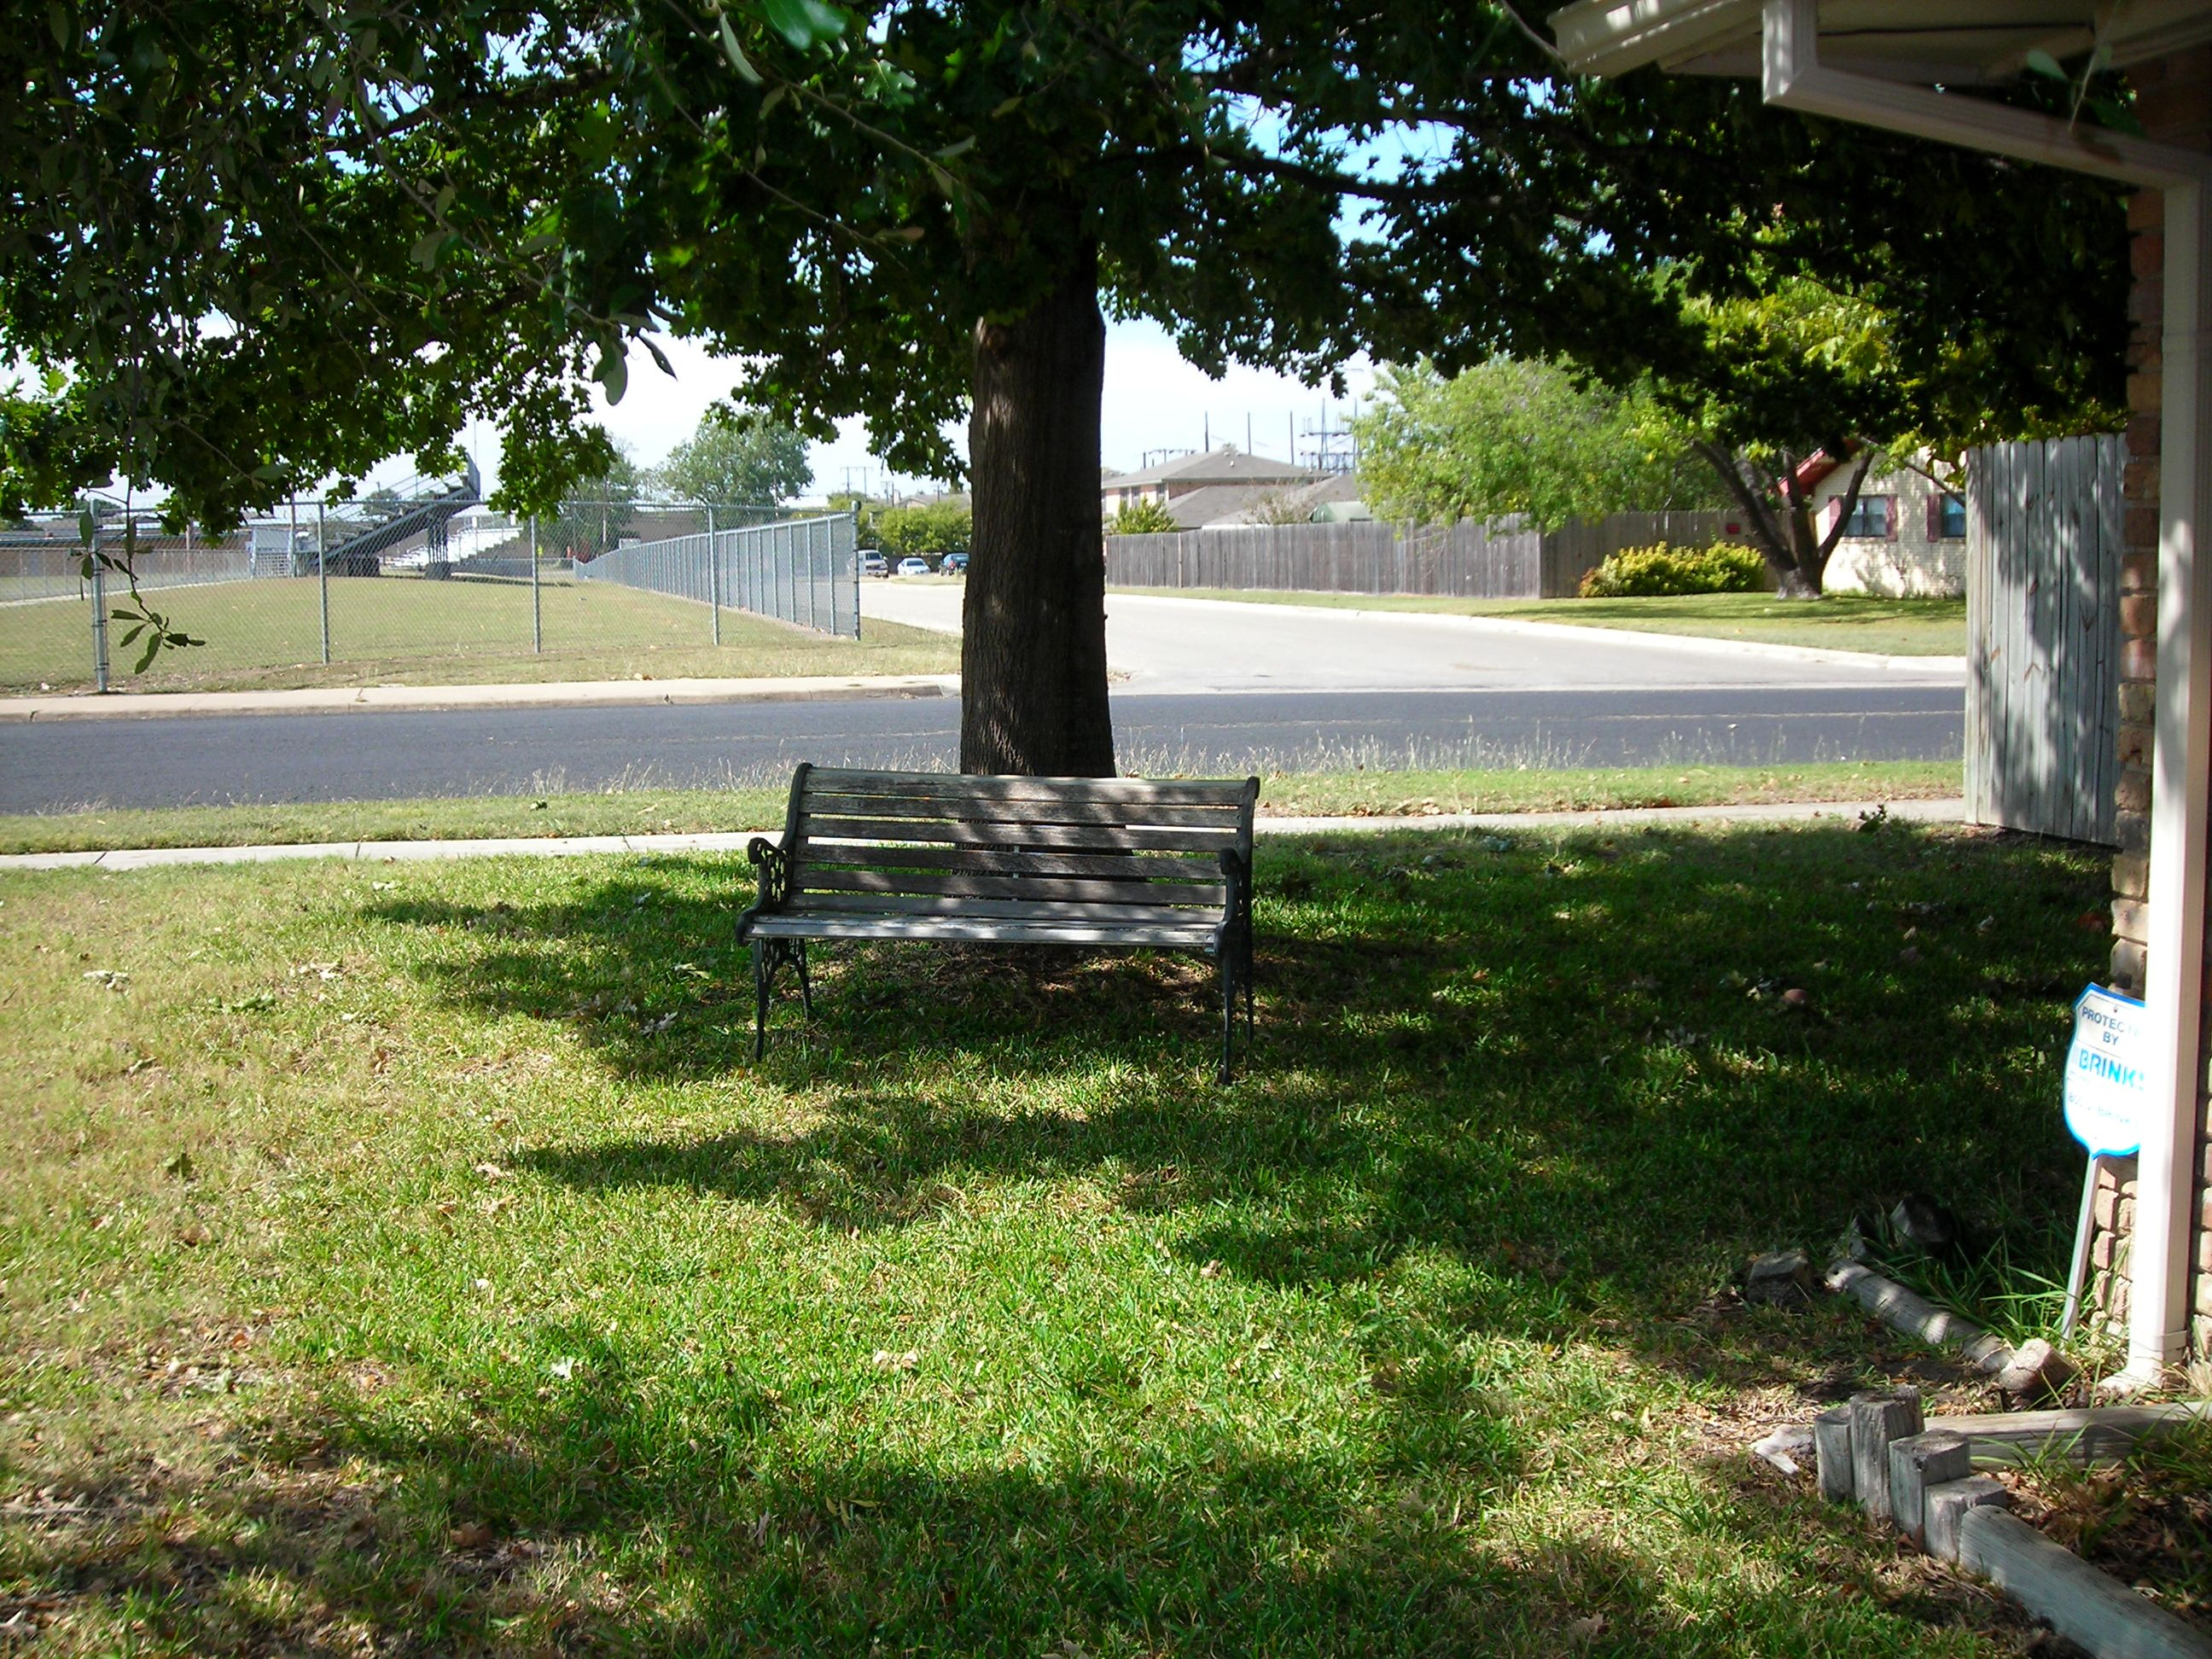 moved the old bench (formerly housed on the front porch) to the side yard, under a tree.